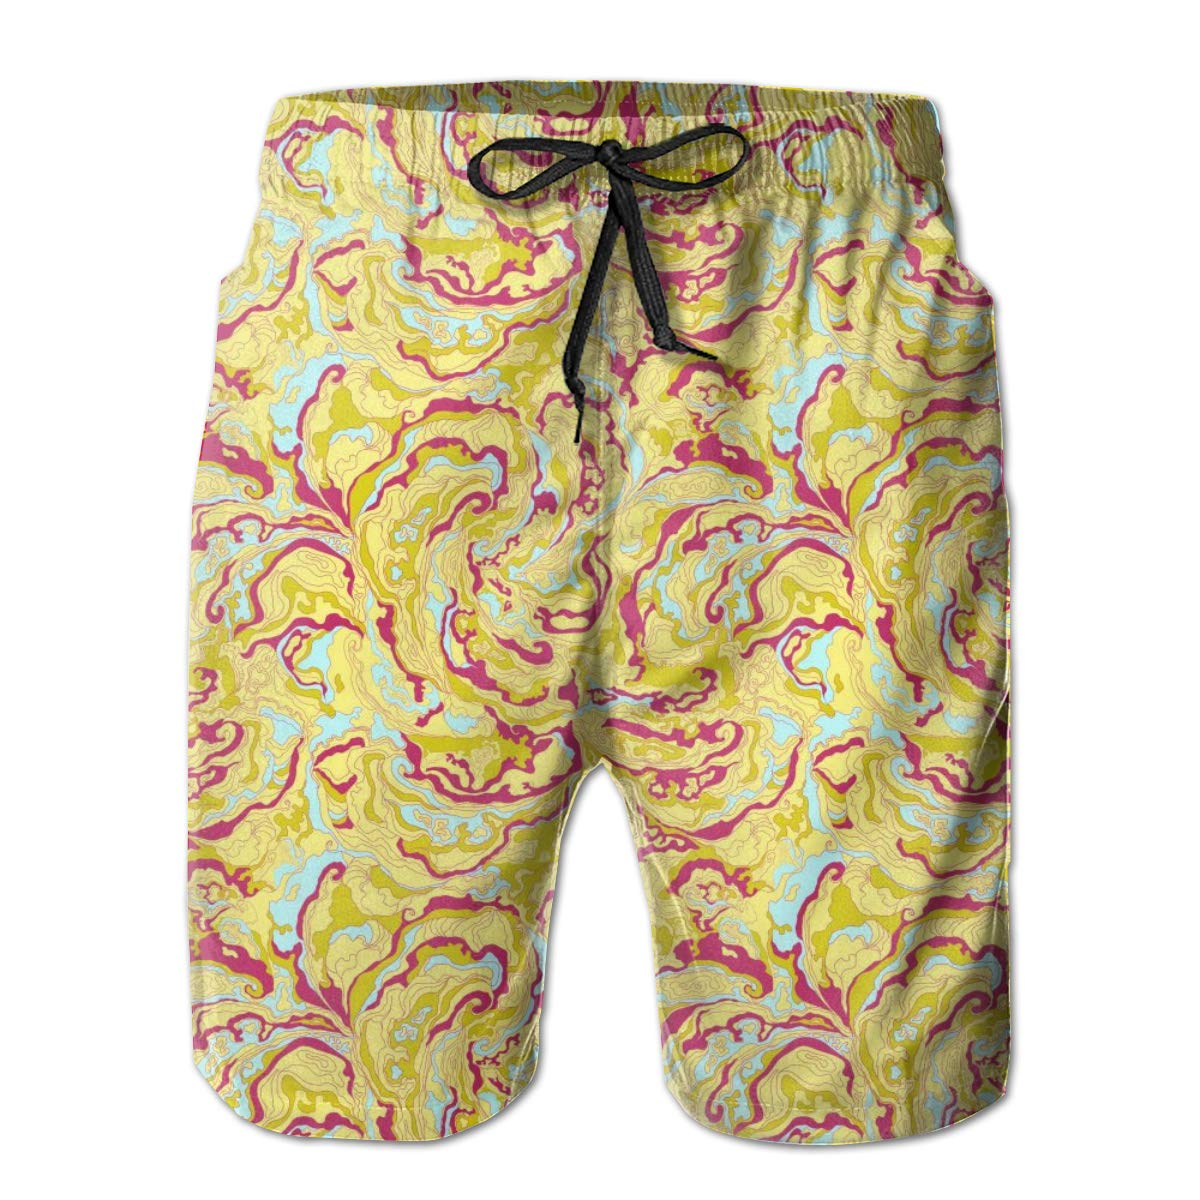 Fashion Swim Trunks Mens Board Shorts Camo for Men Smoke Yellow and Red Quick Dry Shorts